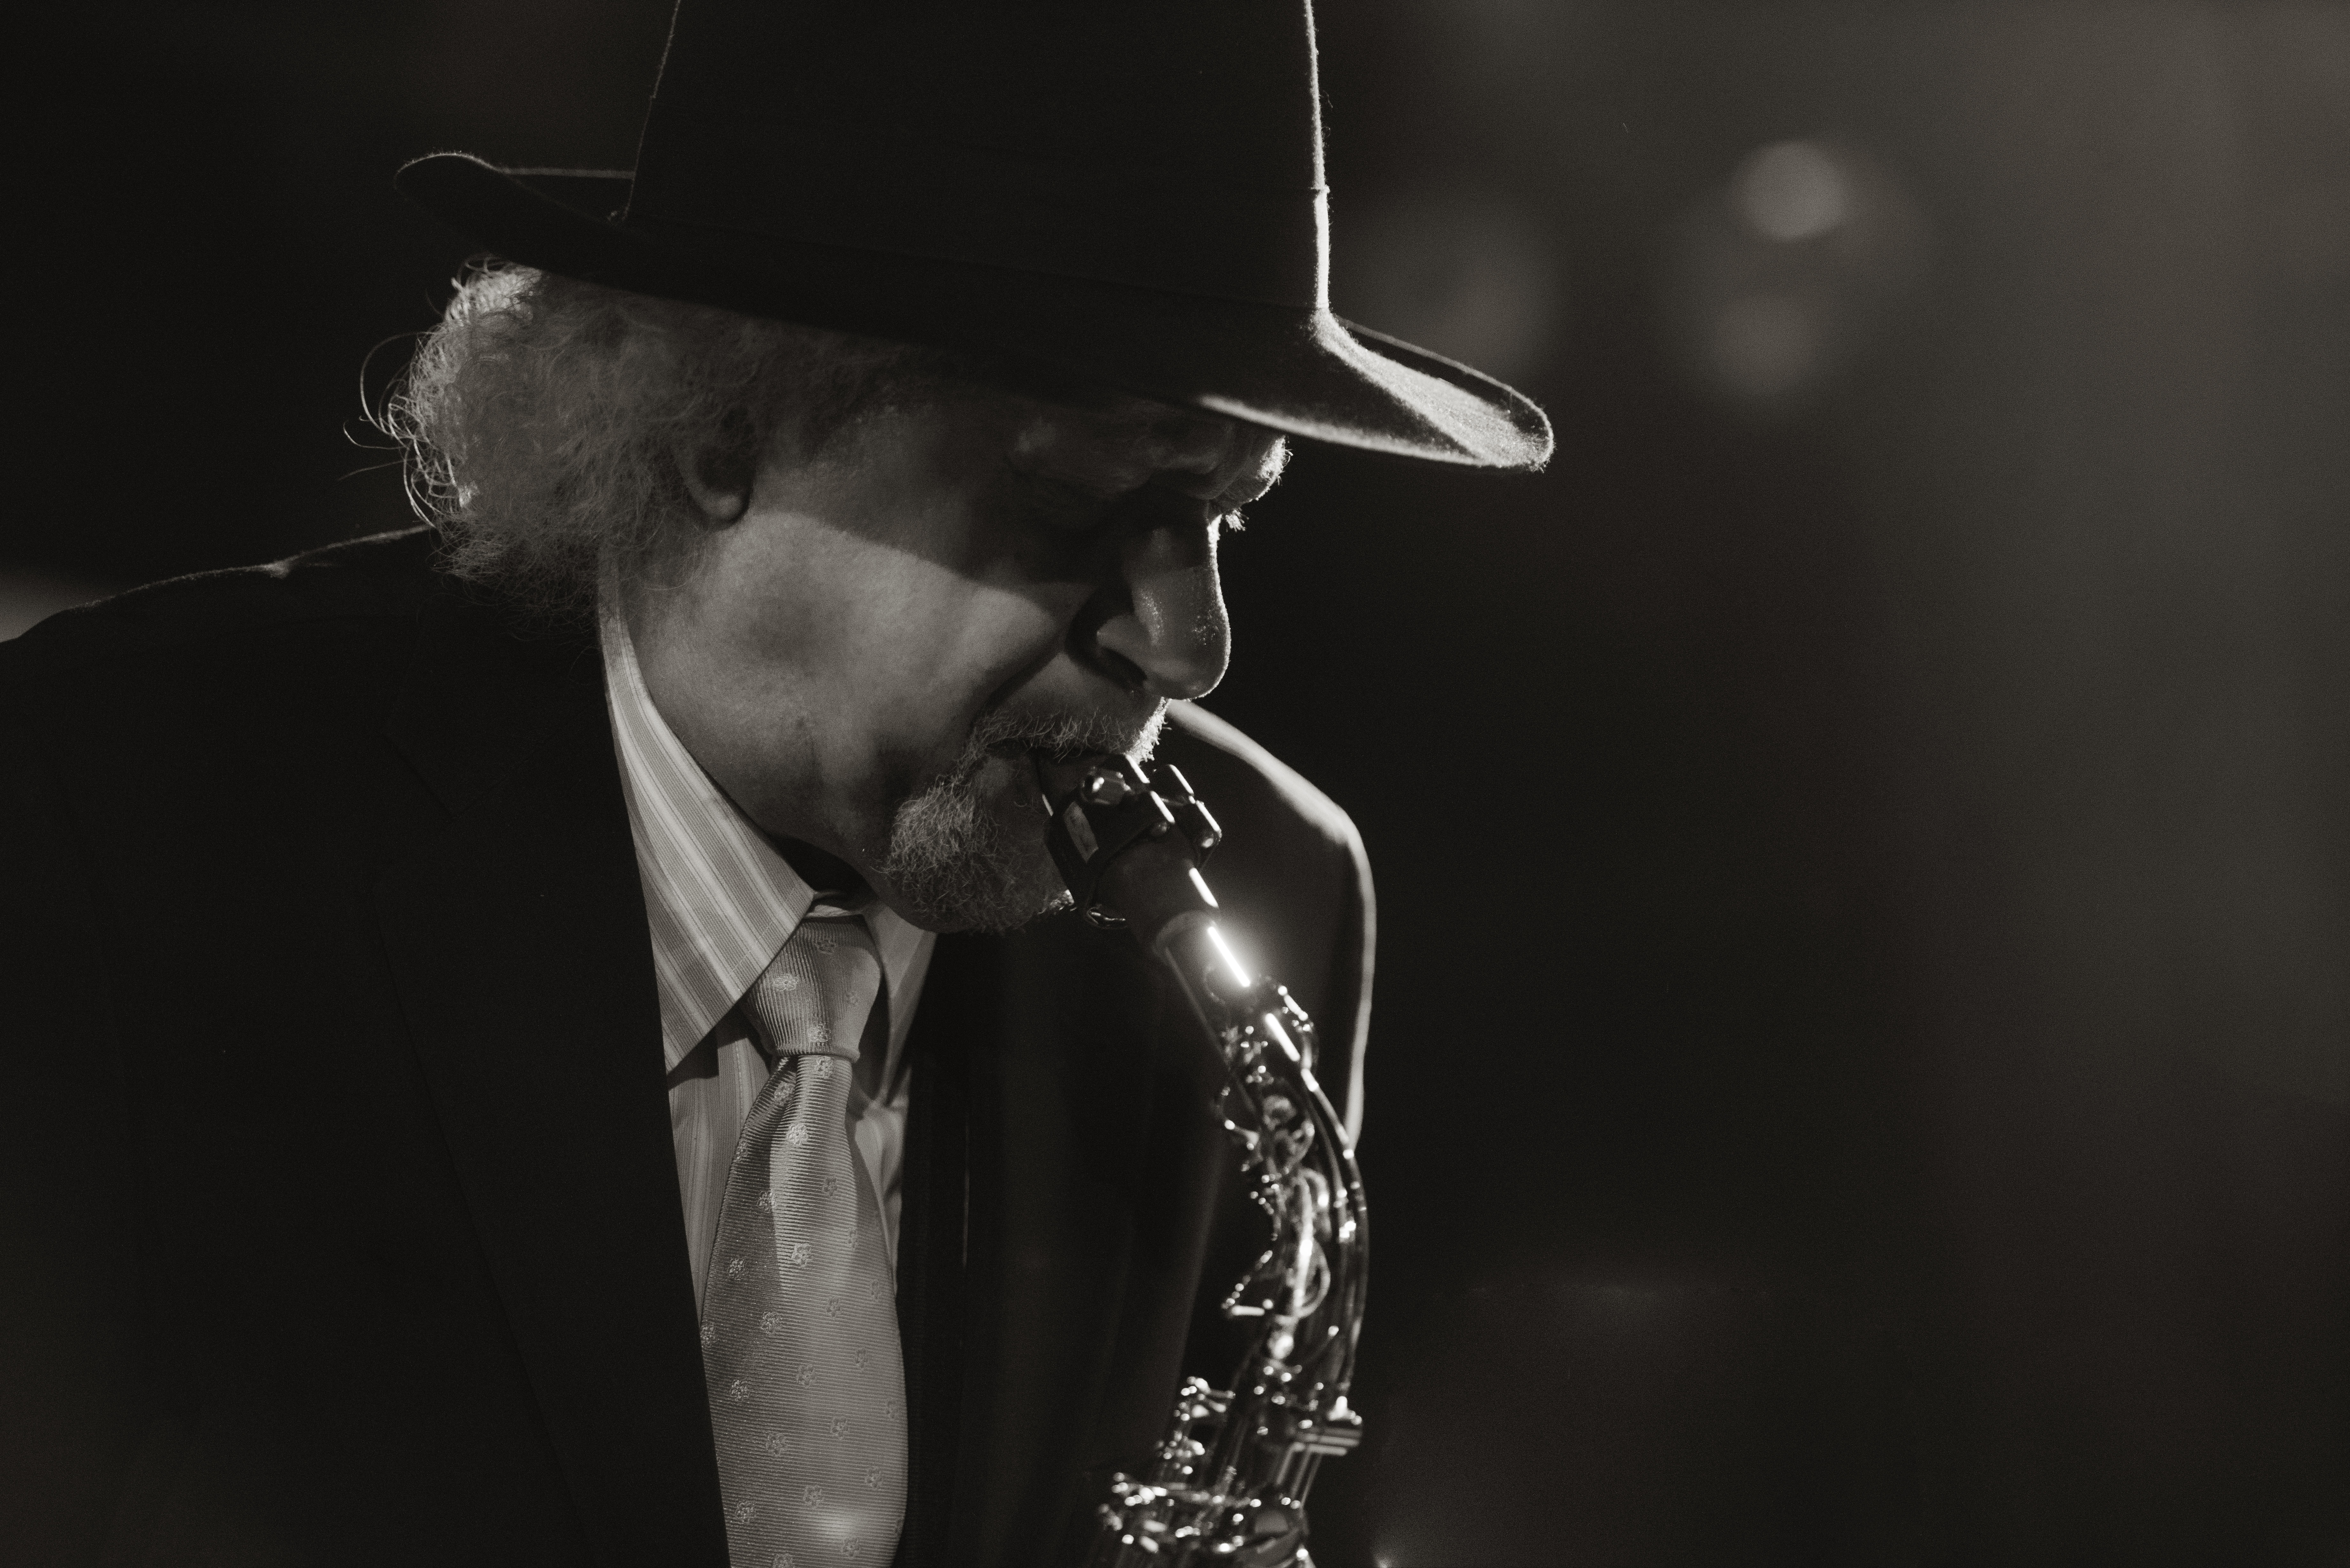 Gary Bartz Celebrating the 50th Anniversary of 'Another Earth' at the NYC Winter Jazzfest 2019